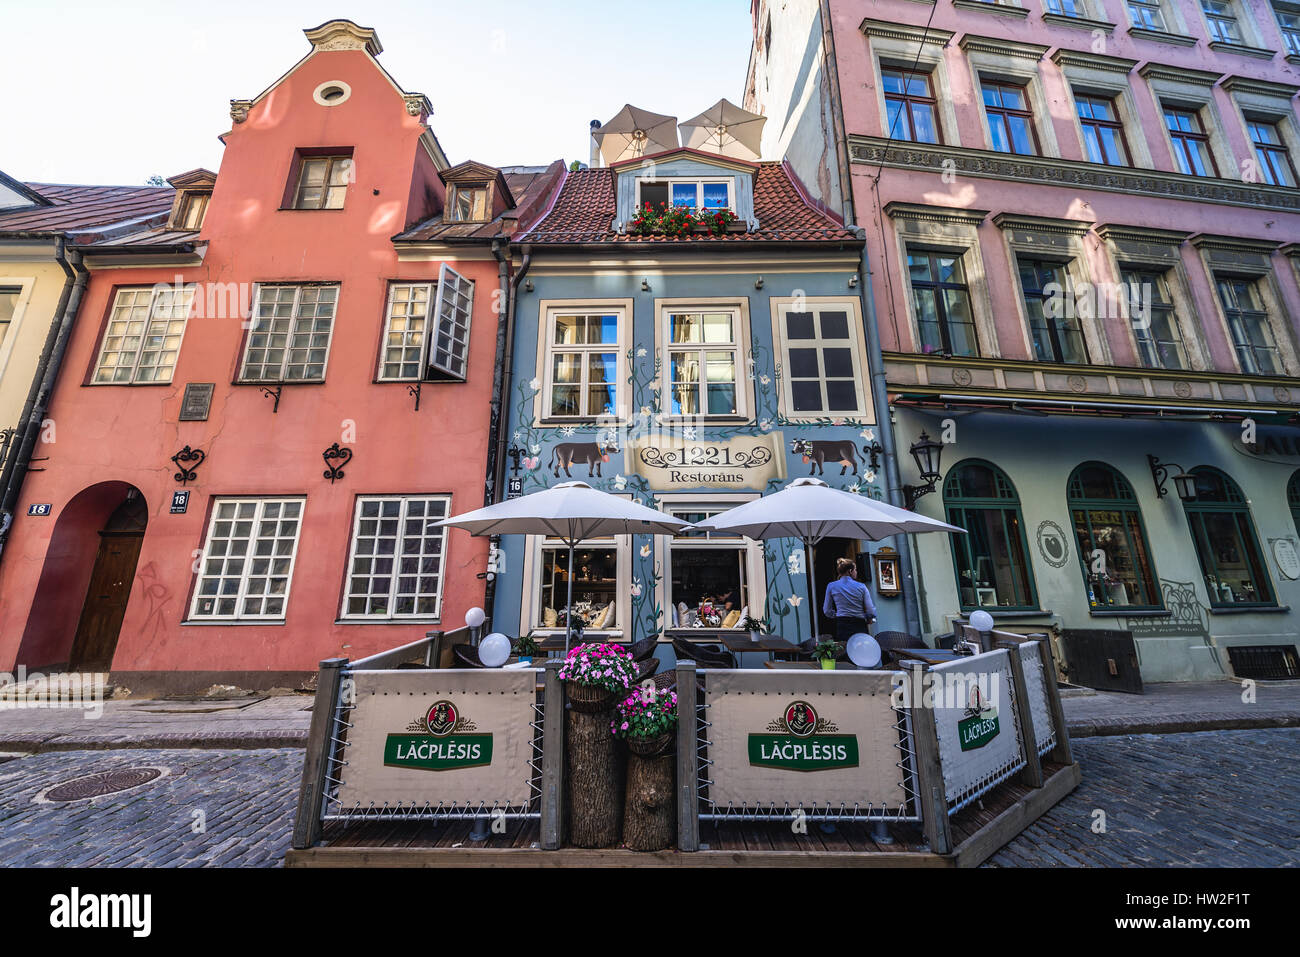 Exterior of 1221 Restaurant on Jauniela Street, Old Town of Riga, capital city of Republic of Latvia - Stock Image